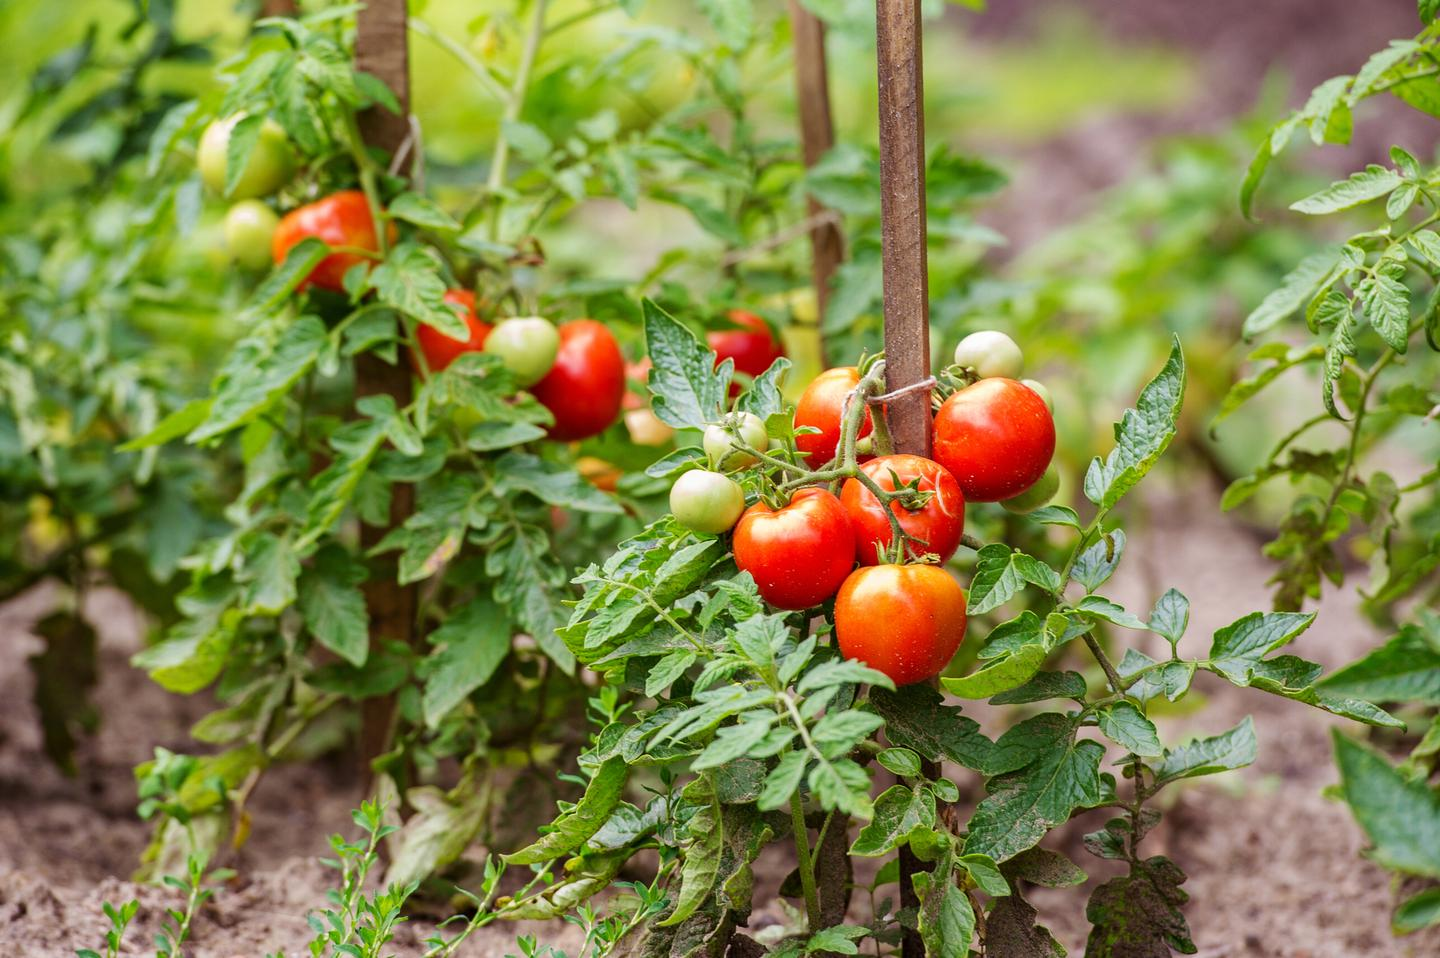 Tomatoes typically require a lot of fertilizer, which can be expensive and harmful to the environment